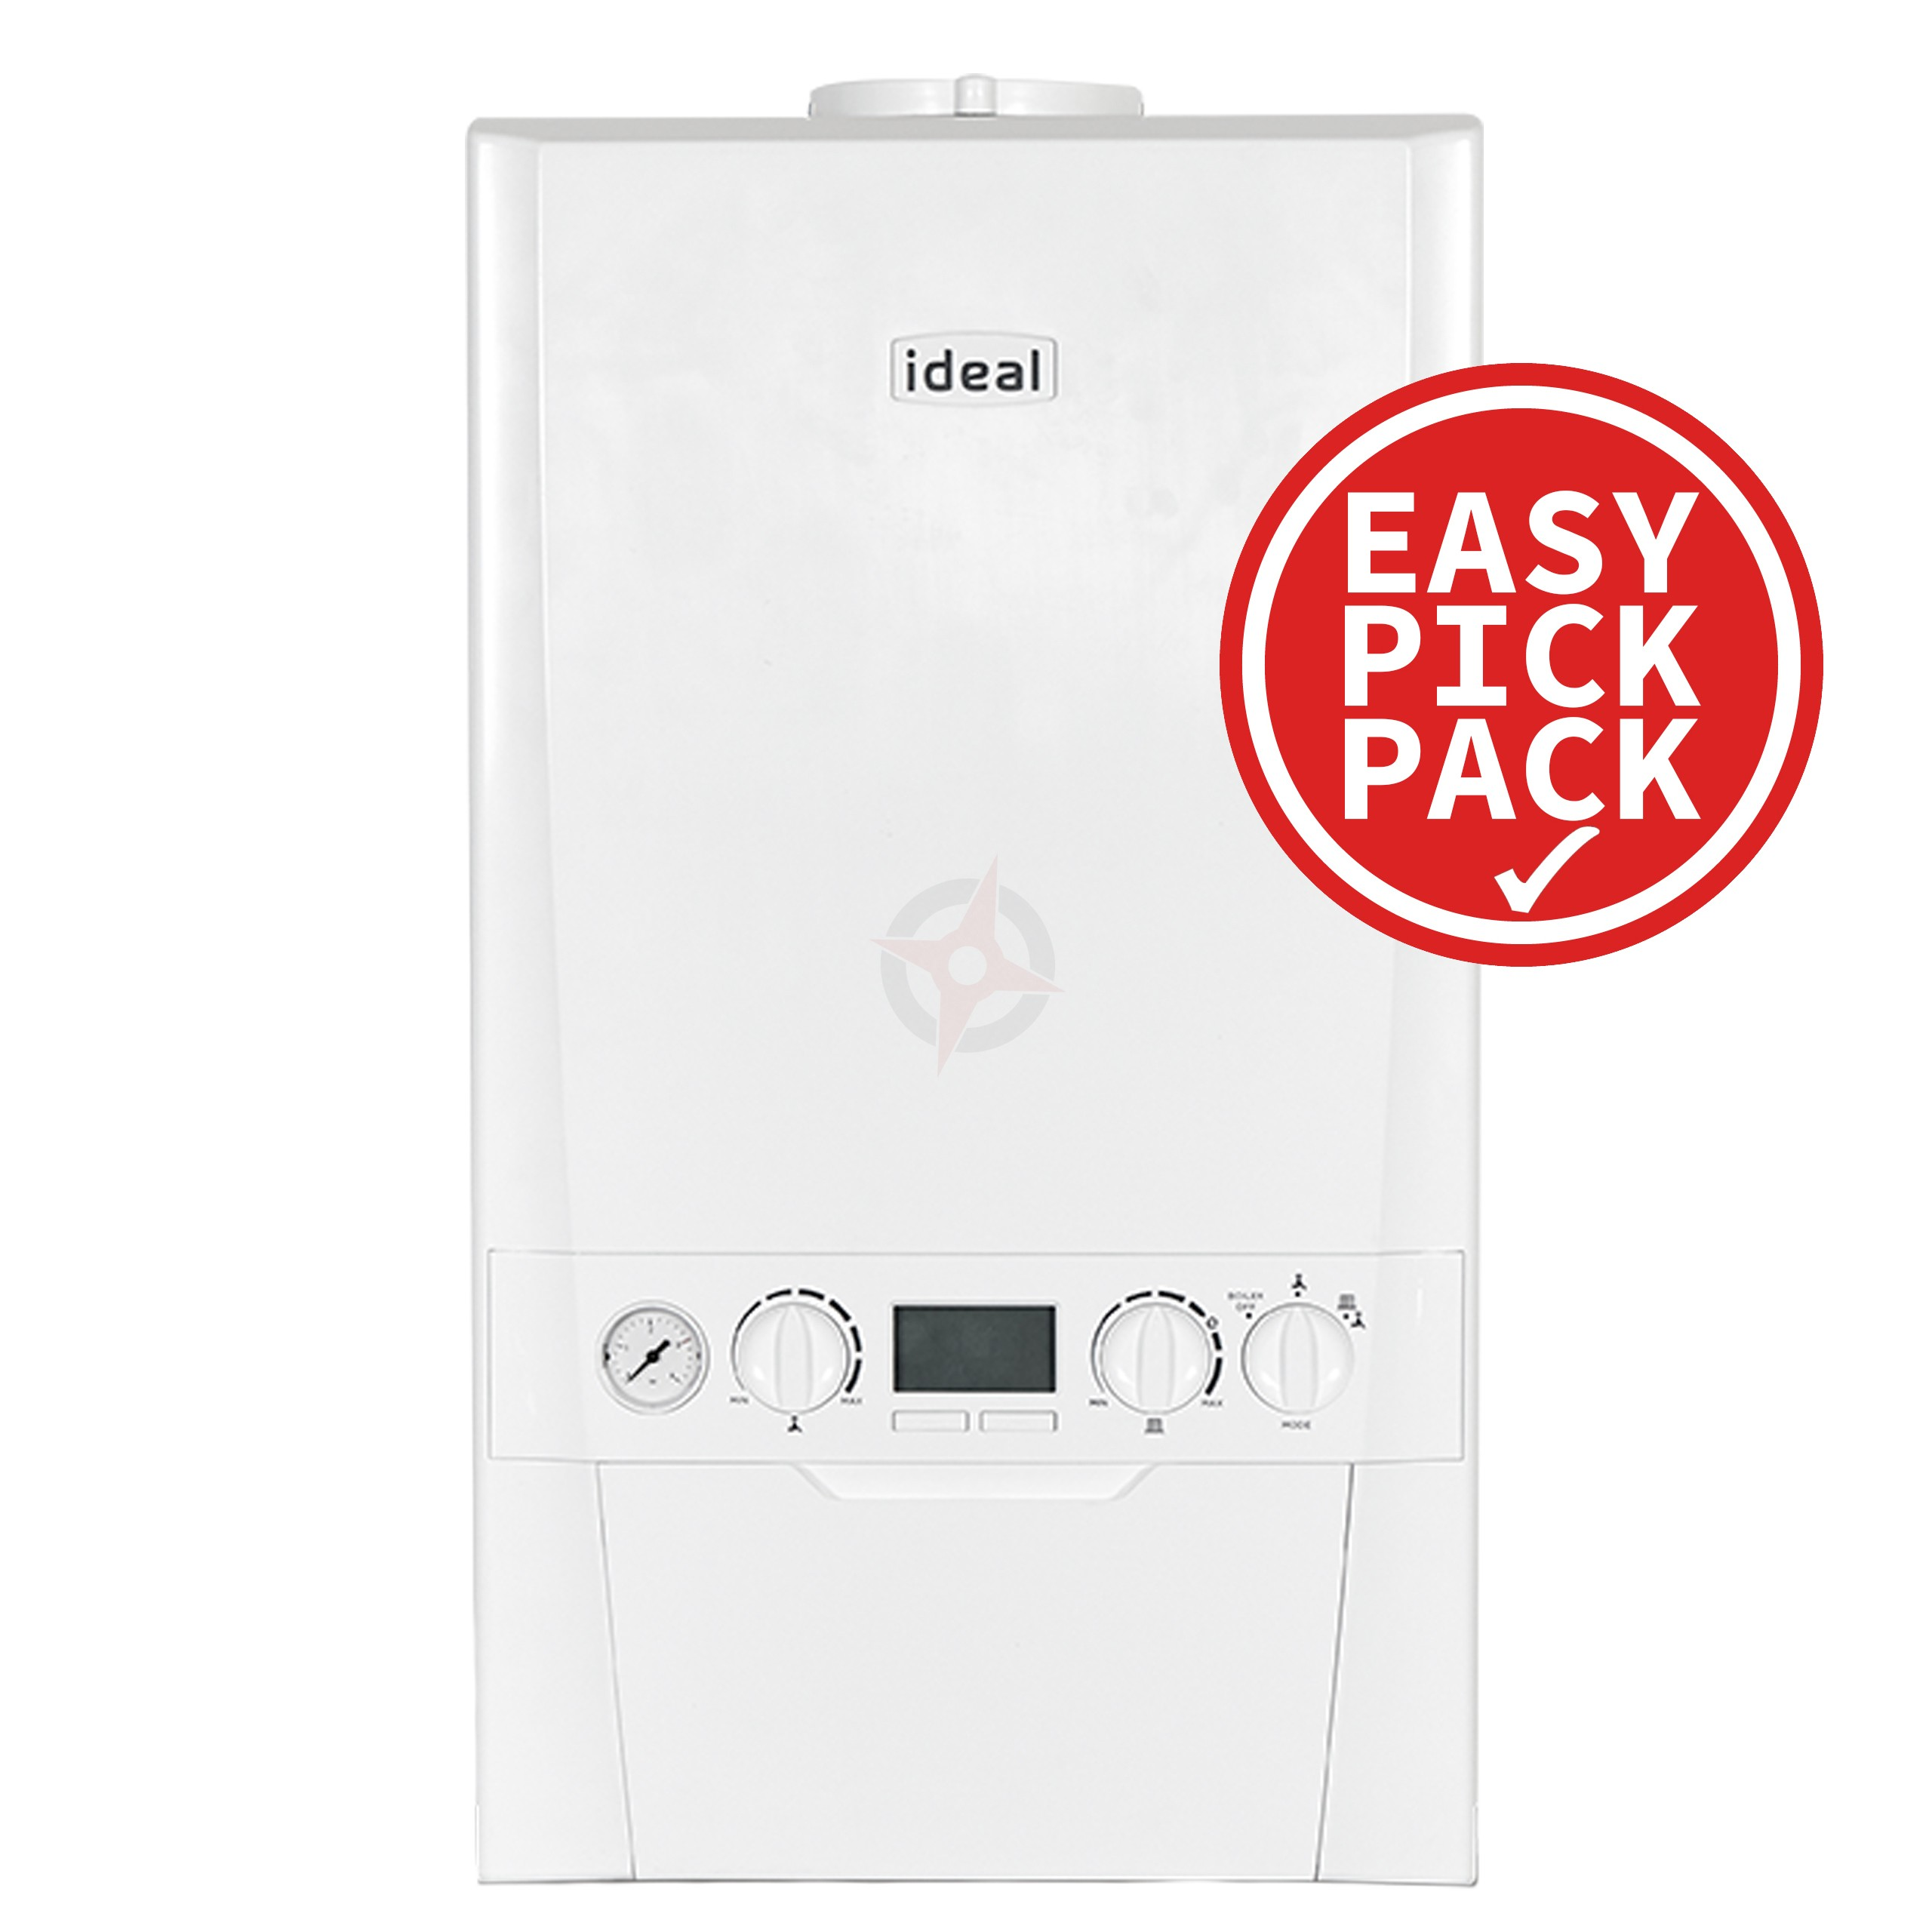 Ideal Logic+ (Plus model) 30 (ErP) Combi Boiler Easy Pick Pack